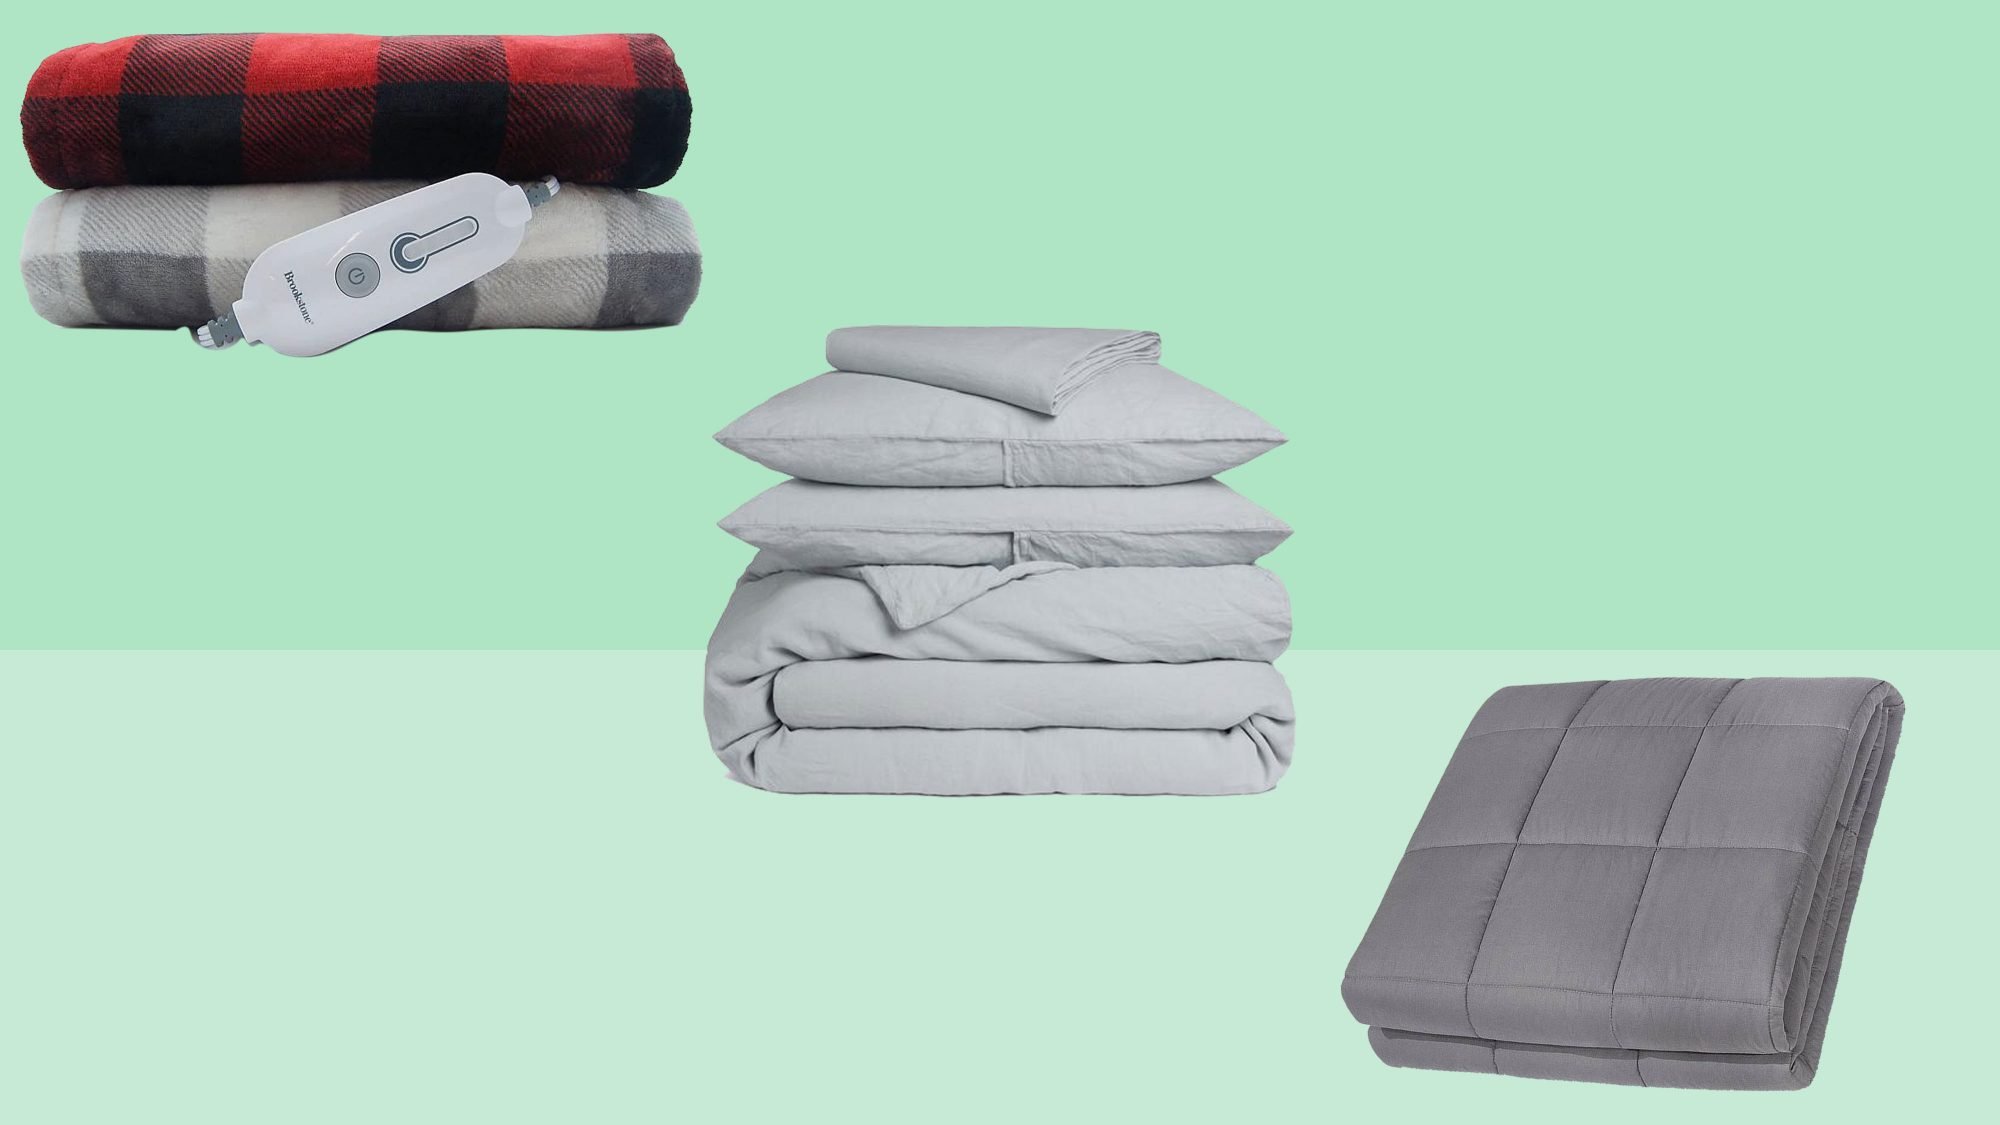 heated flannel blanket, weighted blanket, parachute home sheets